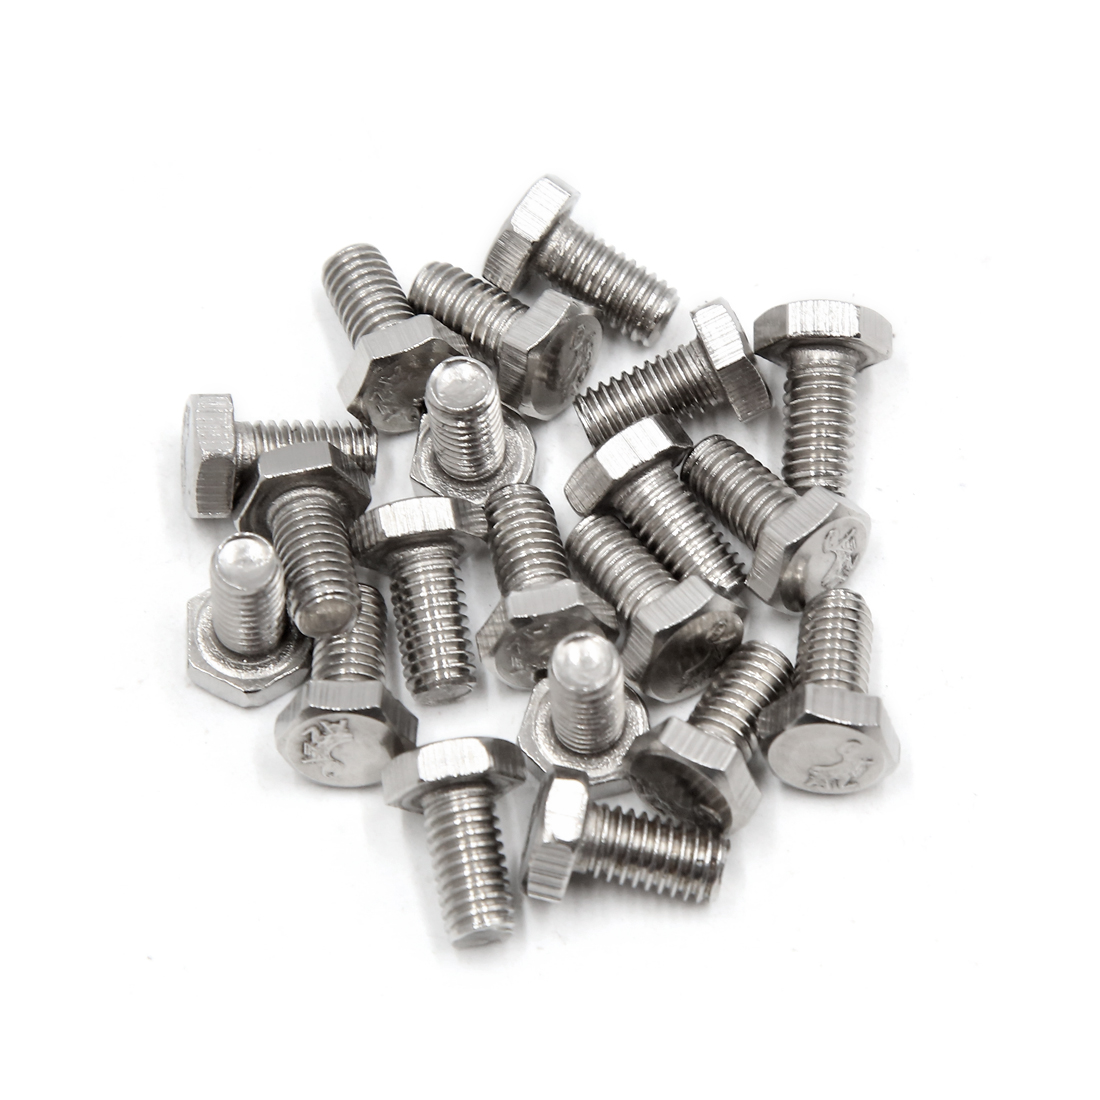 20Pcs M6 x 12mm 304 Stainless Steel Car Motorcycle Hex Socket Head Screws Bolts